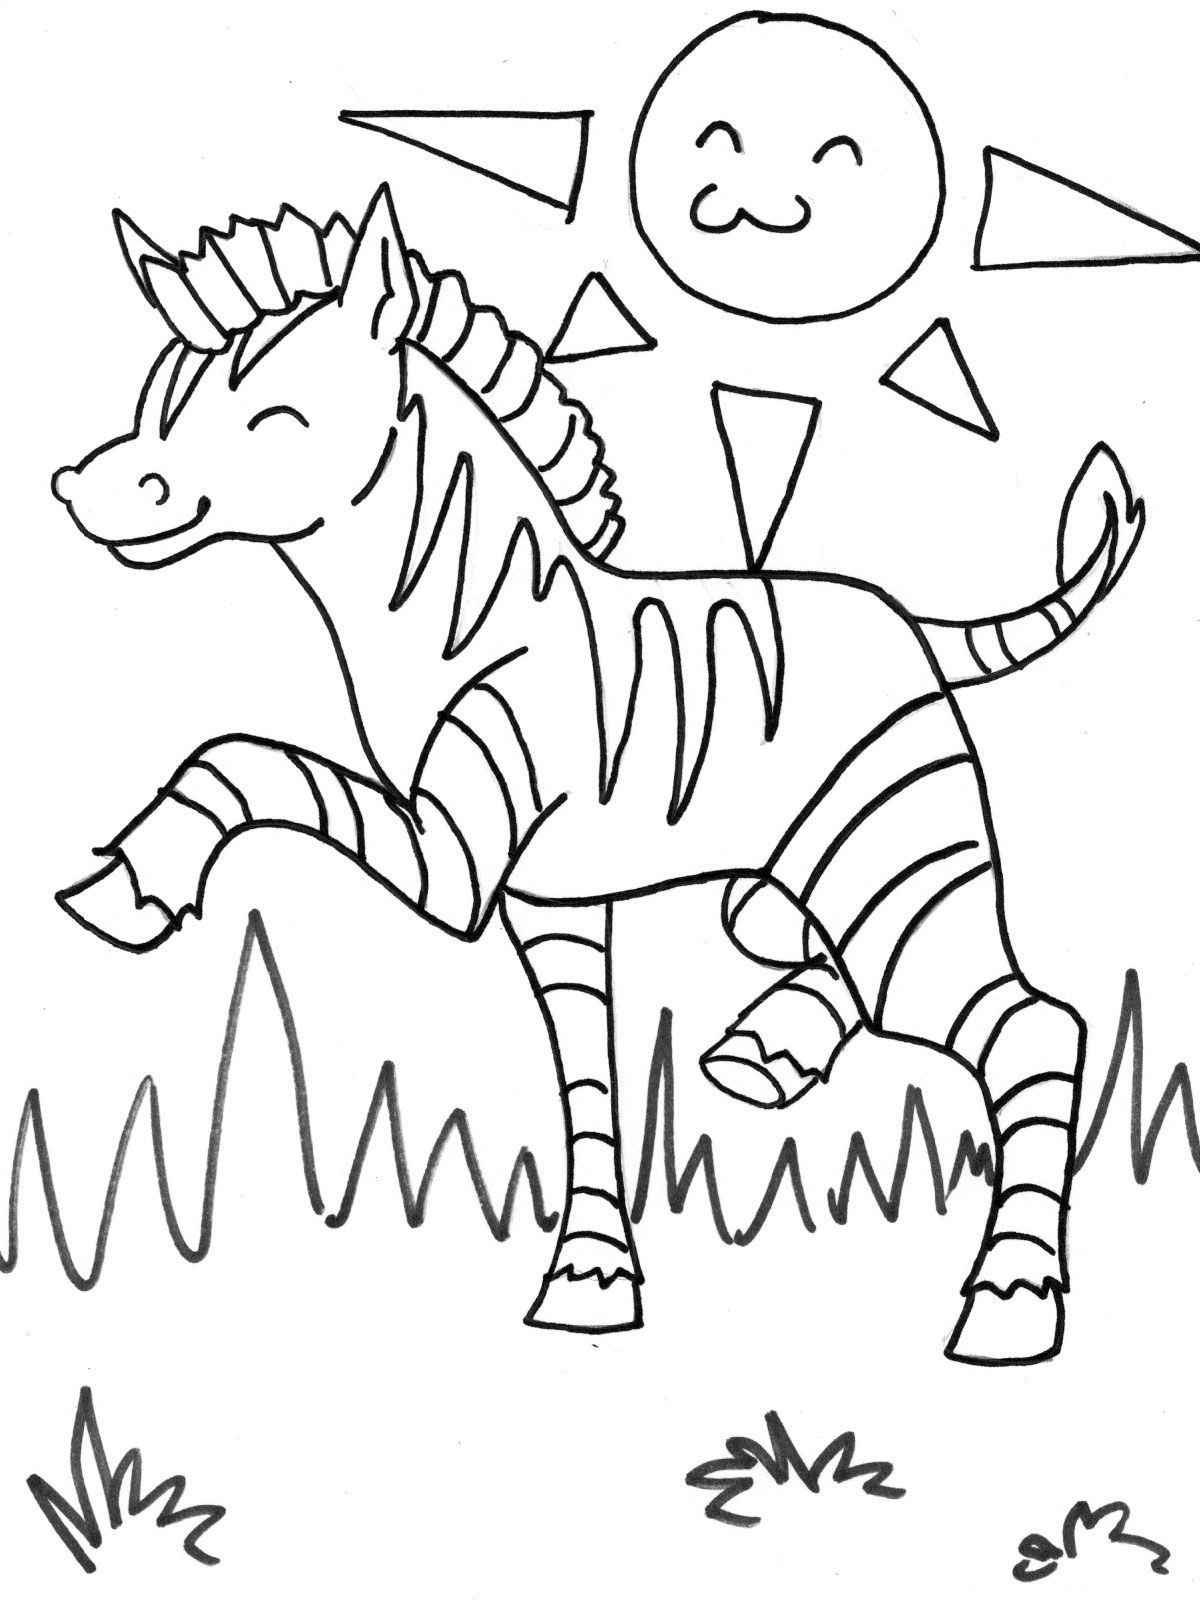 Zebra Coloring Page Zebra Coloring Pages Coloring Pages